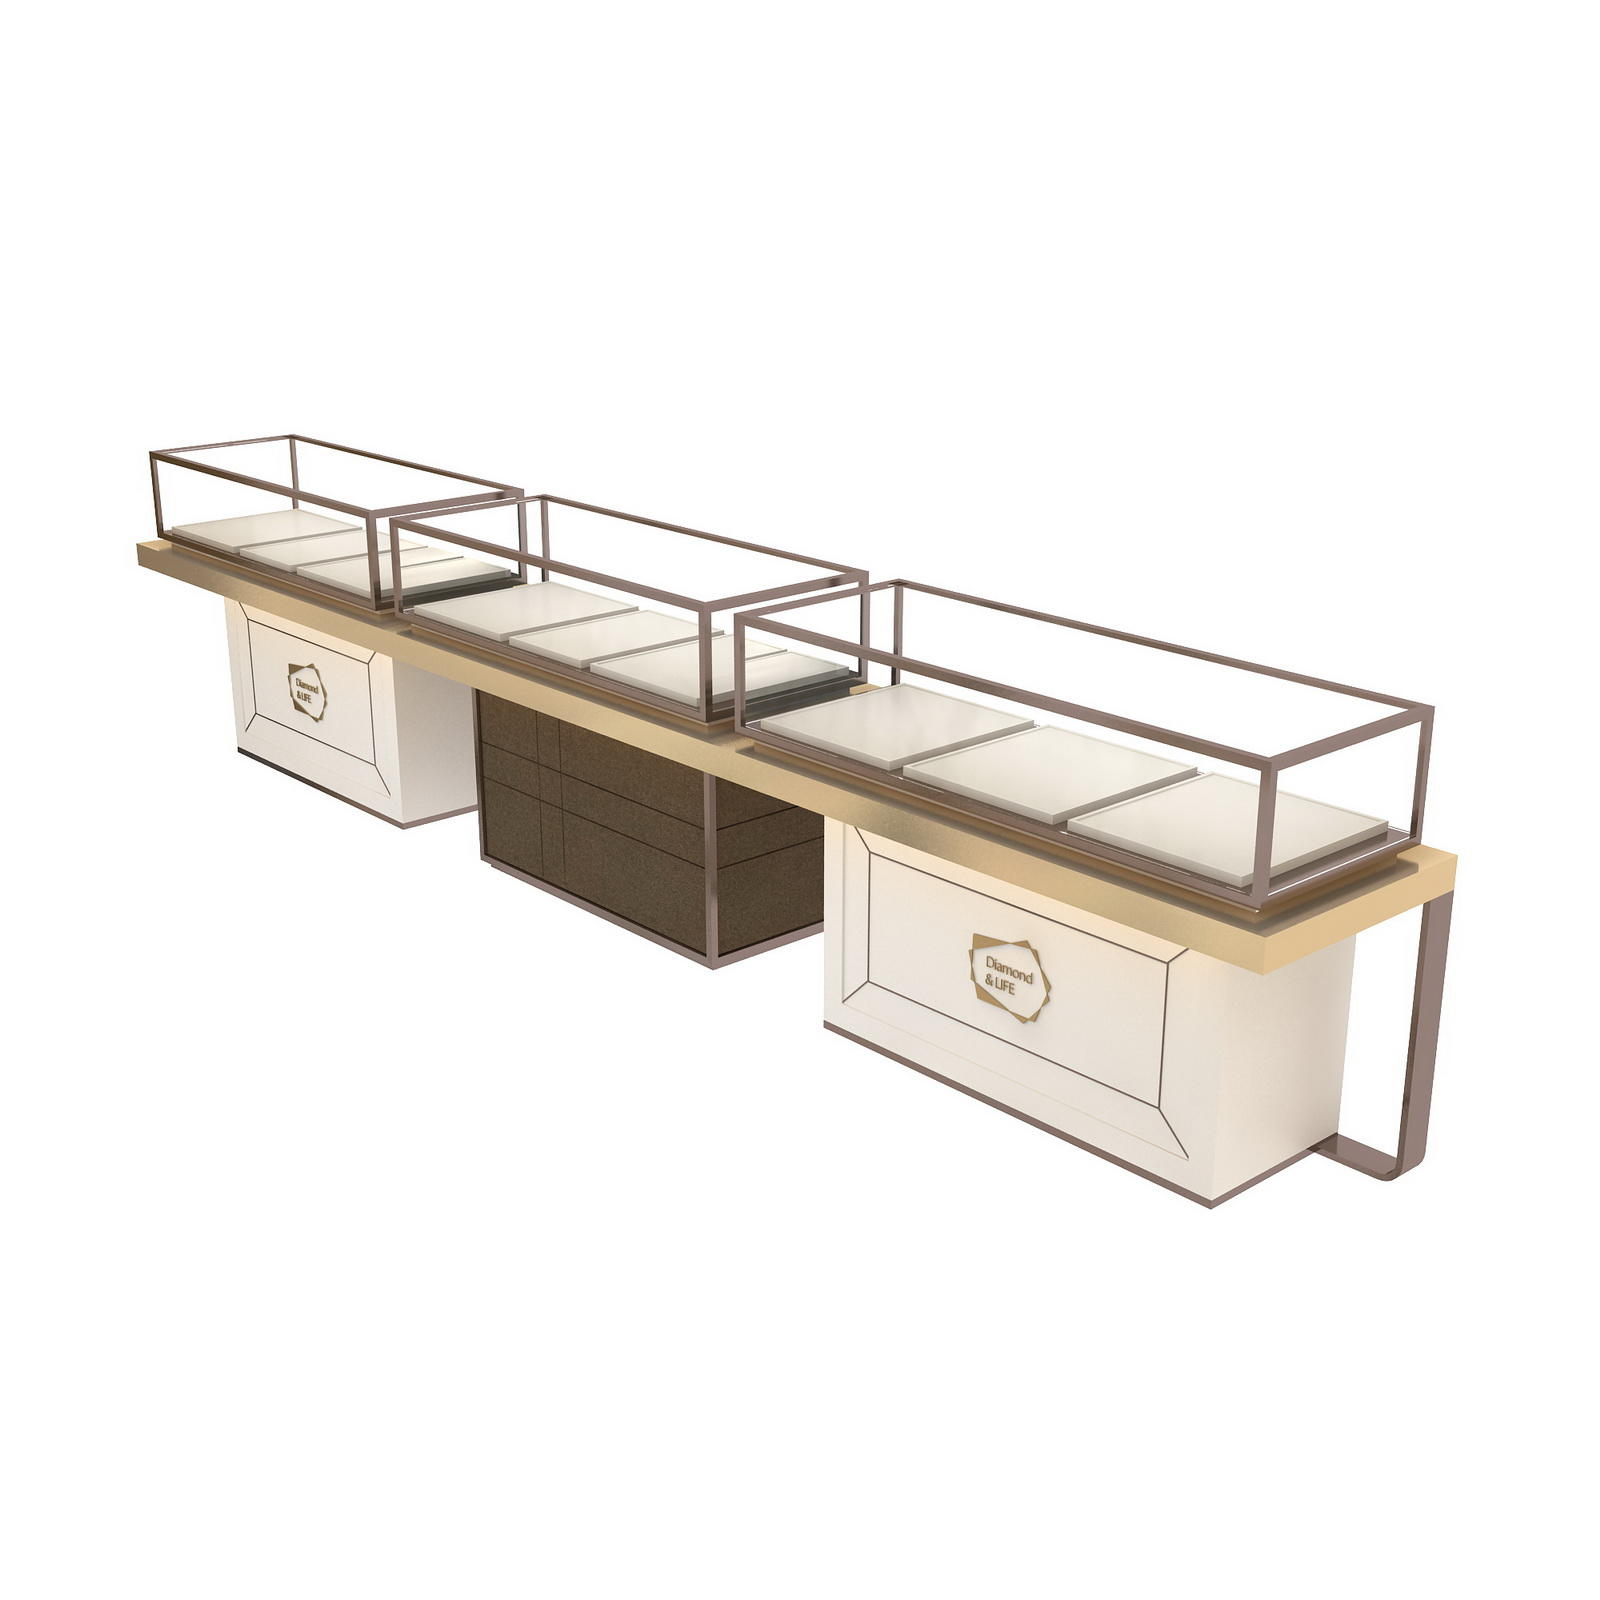 retail jewellery display cabinets commercial for store OUYEE-2